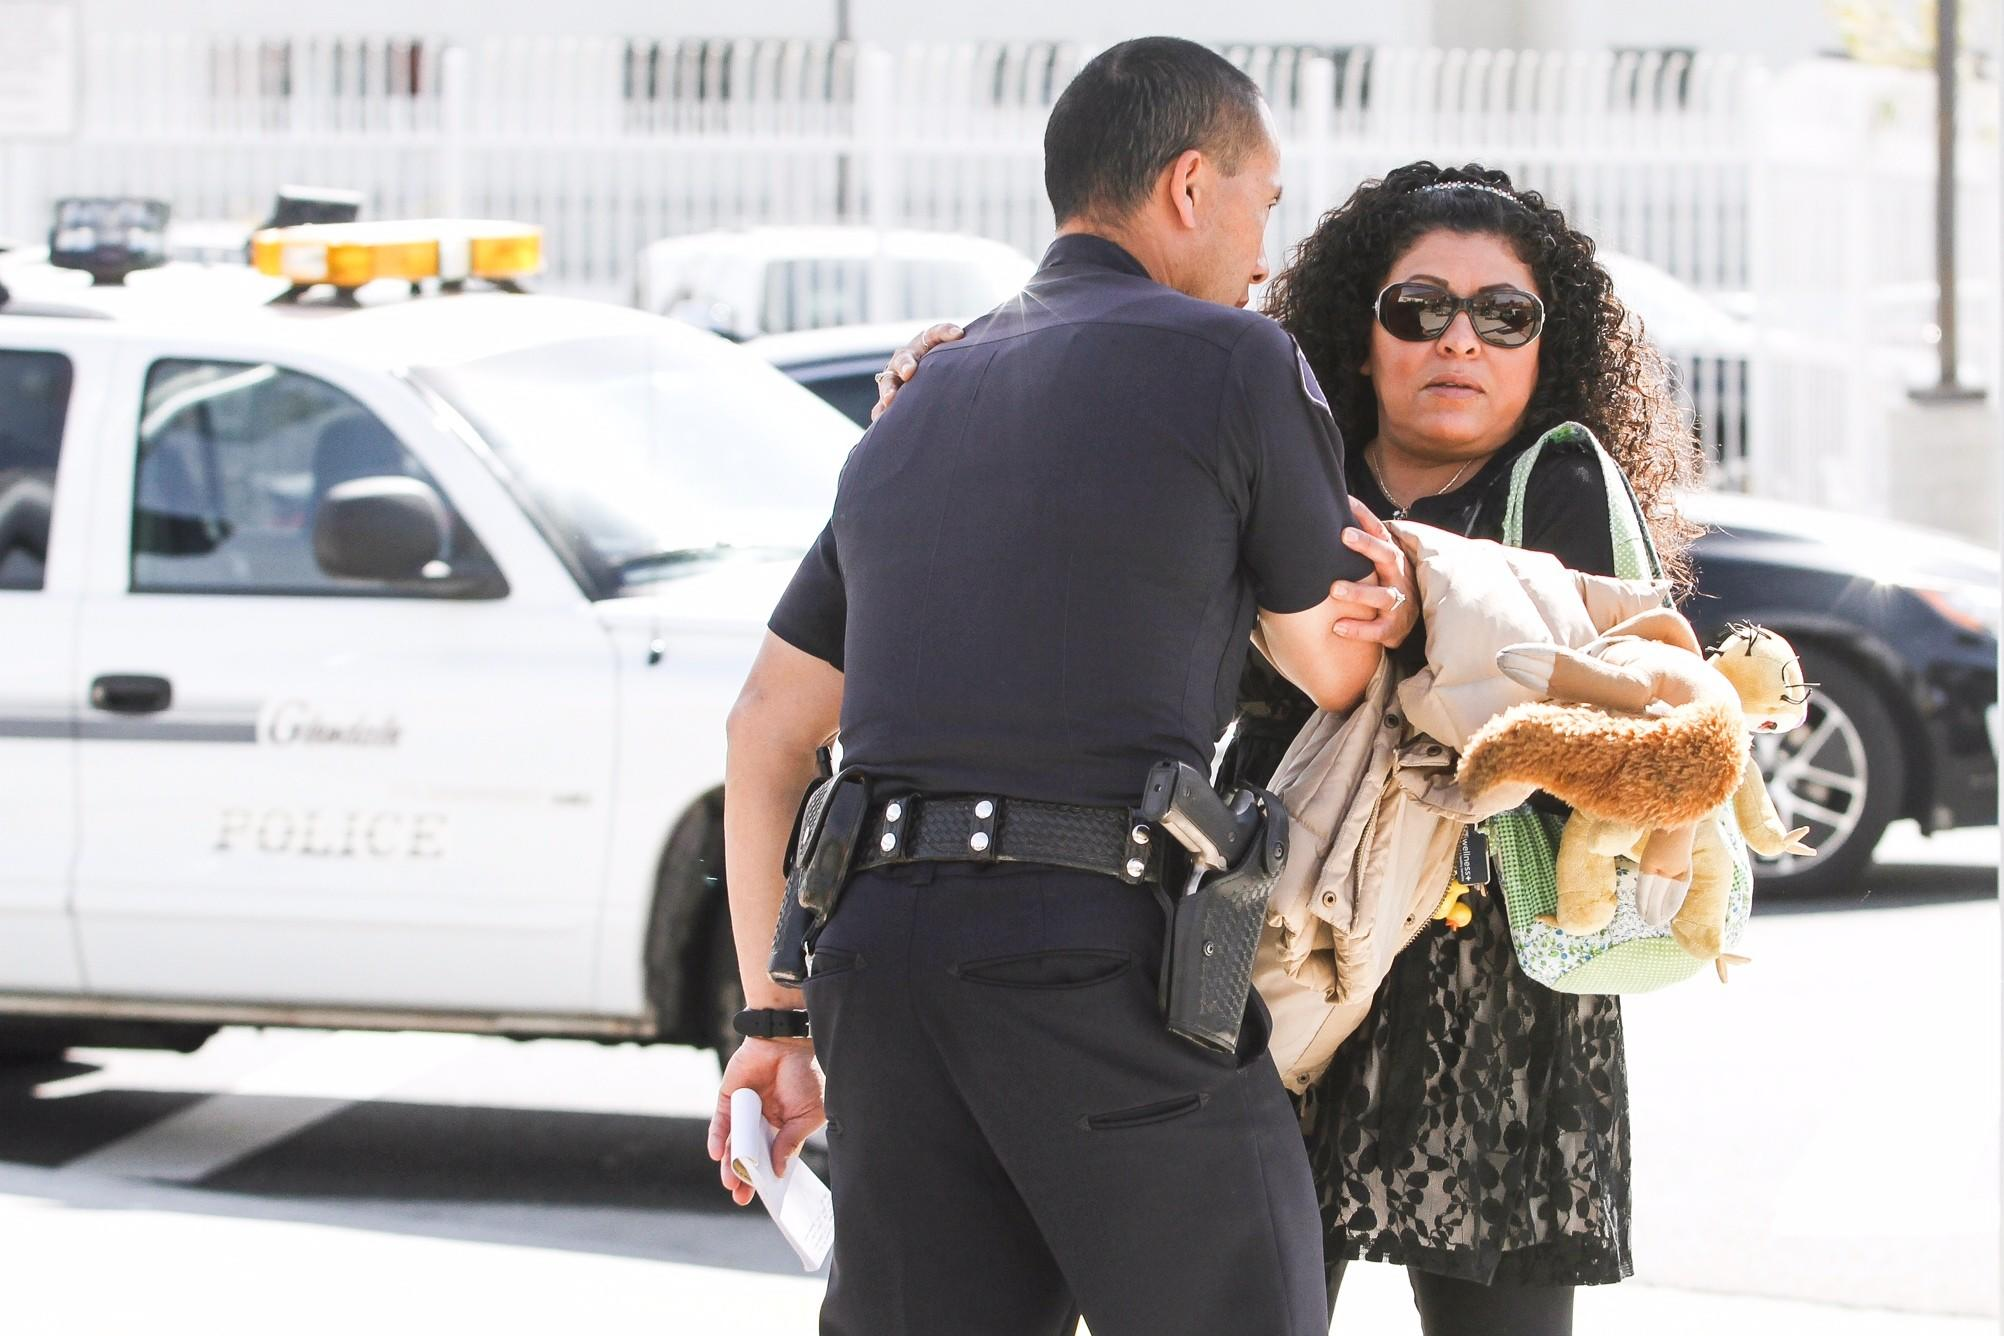 While Glendale Police Officer Stan Mar interviews a witness, she reenacts how a man allgedly stabbed a woman at Pacific Avenue and San Fernando Road on Thursday.